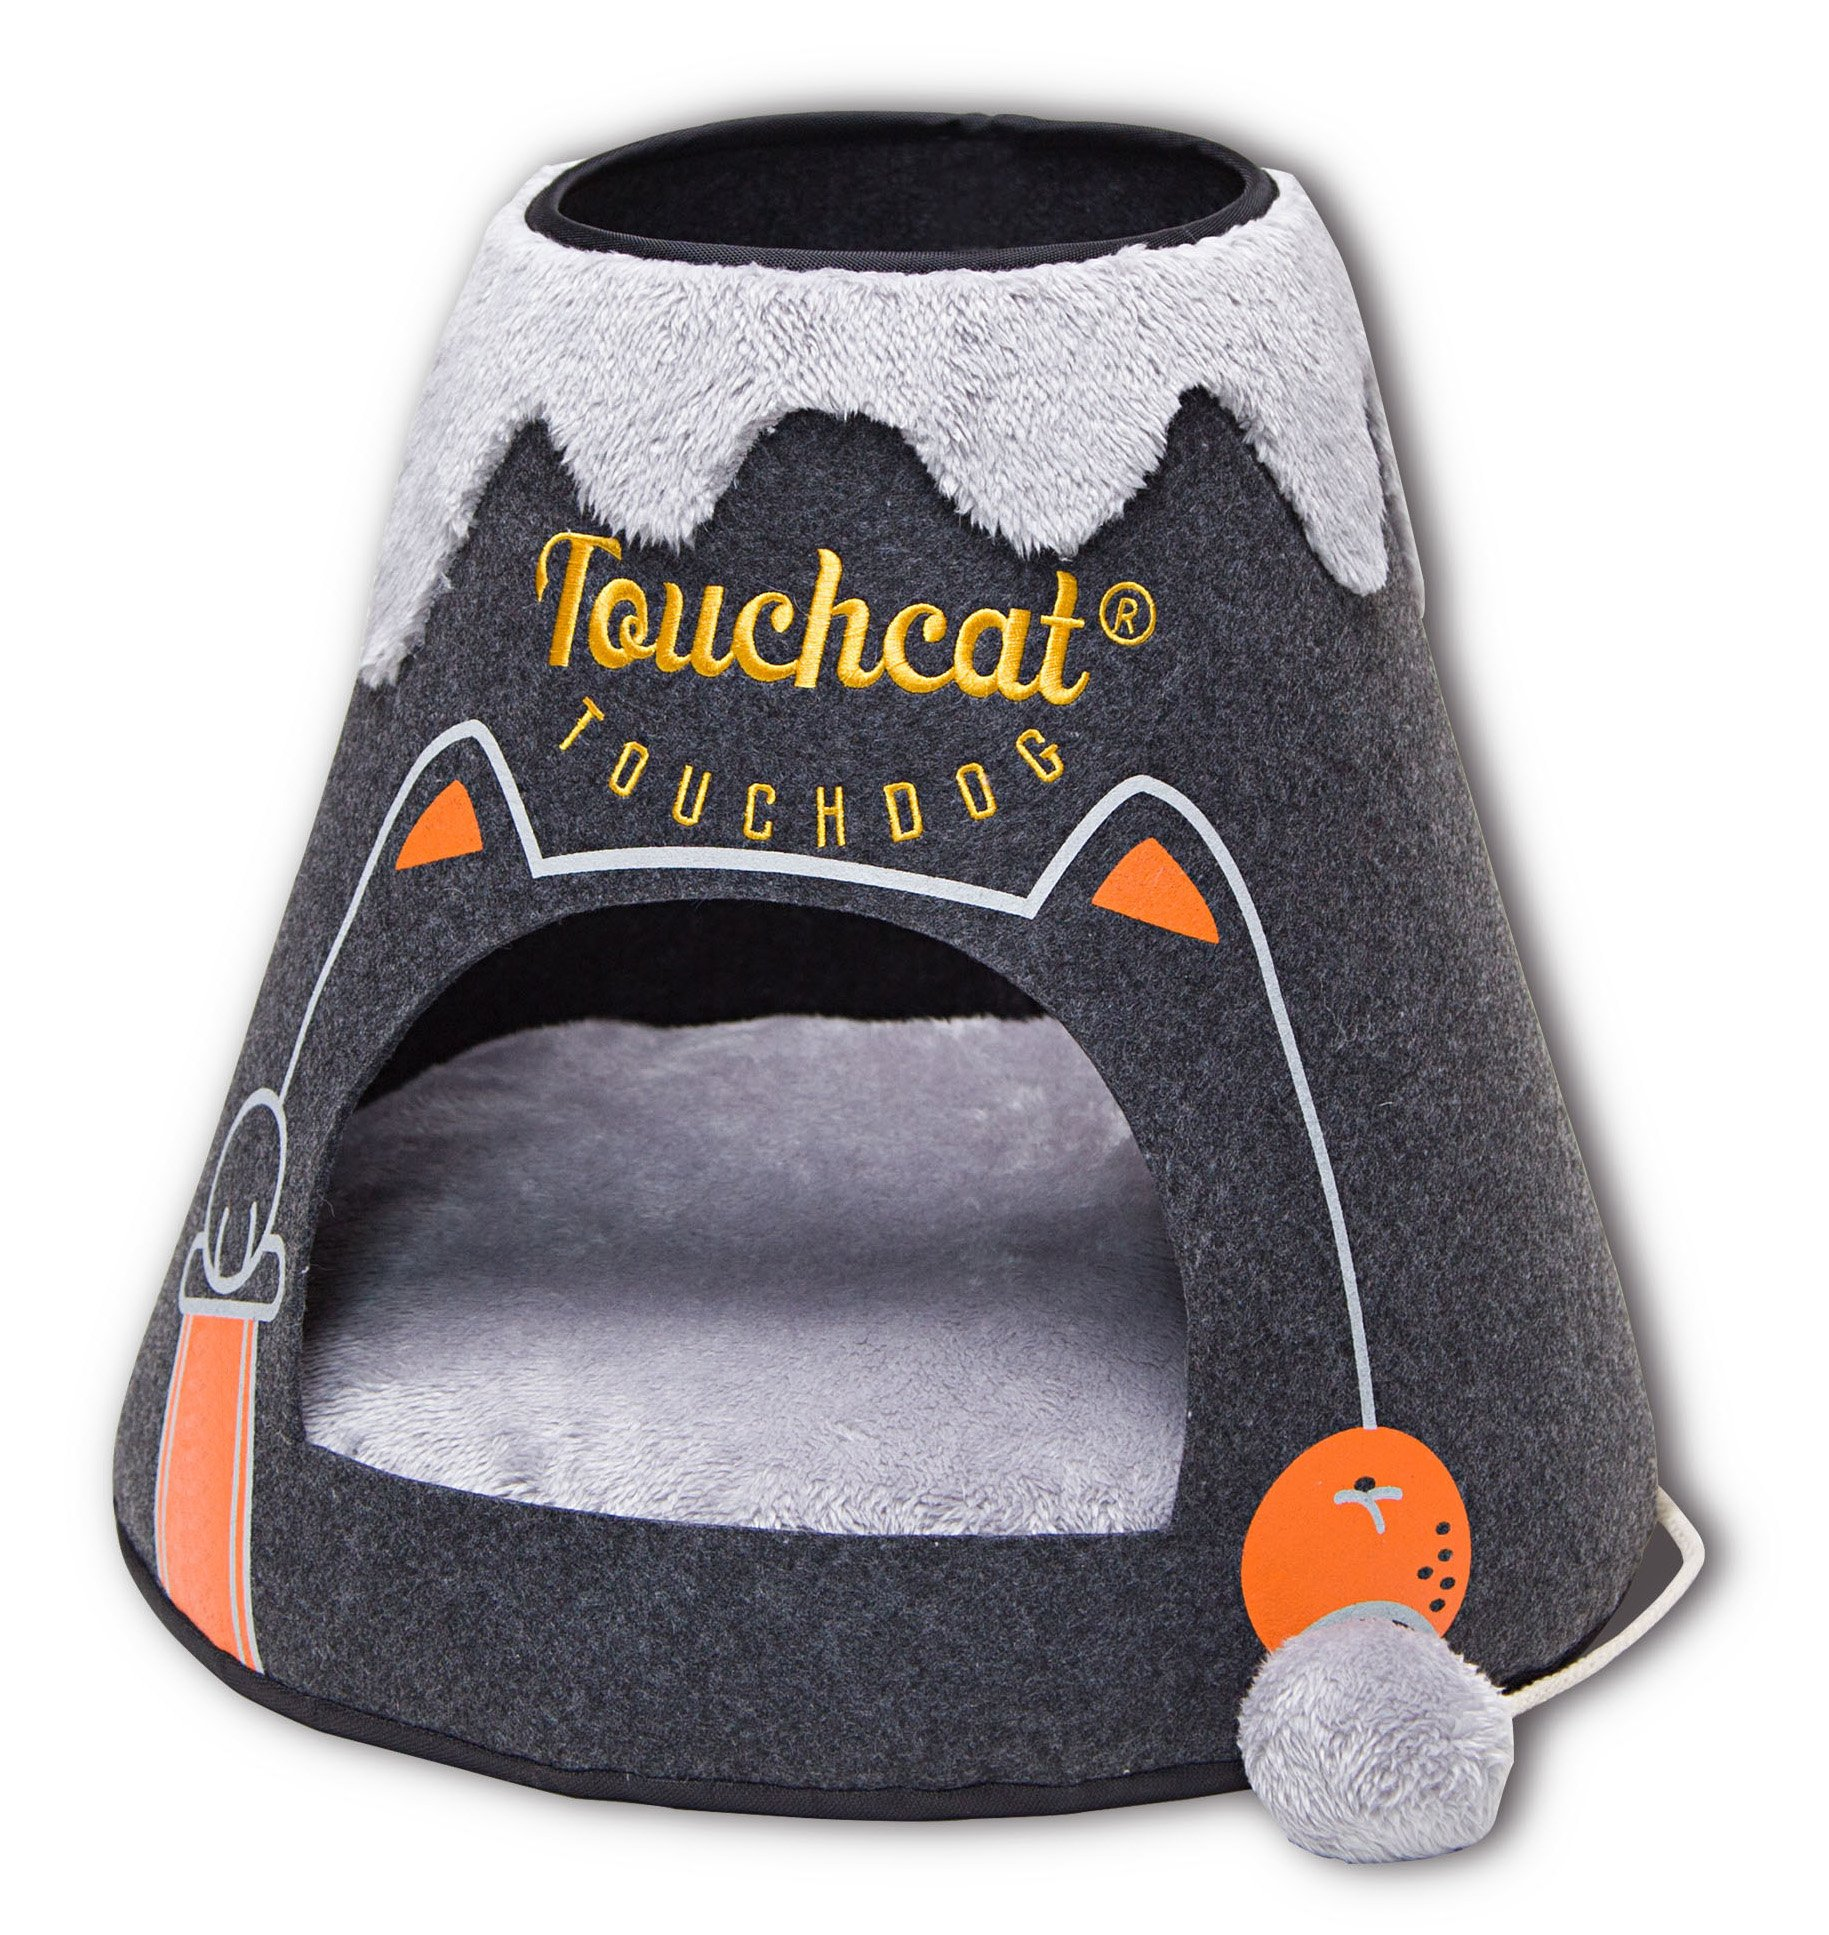 Touchcat Molten Lava' Triangular Frashion Designer Pet Kitty Cat Bed House Lounge Lounger w/Hanging Teaser Toy, Large, Black and Grey